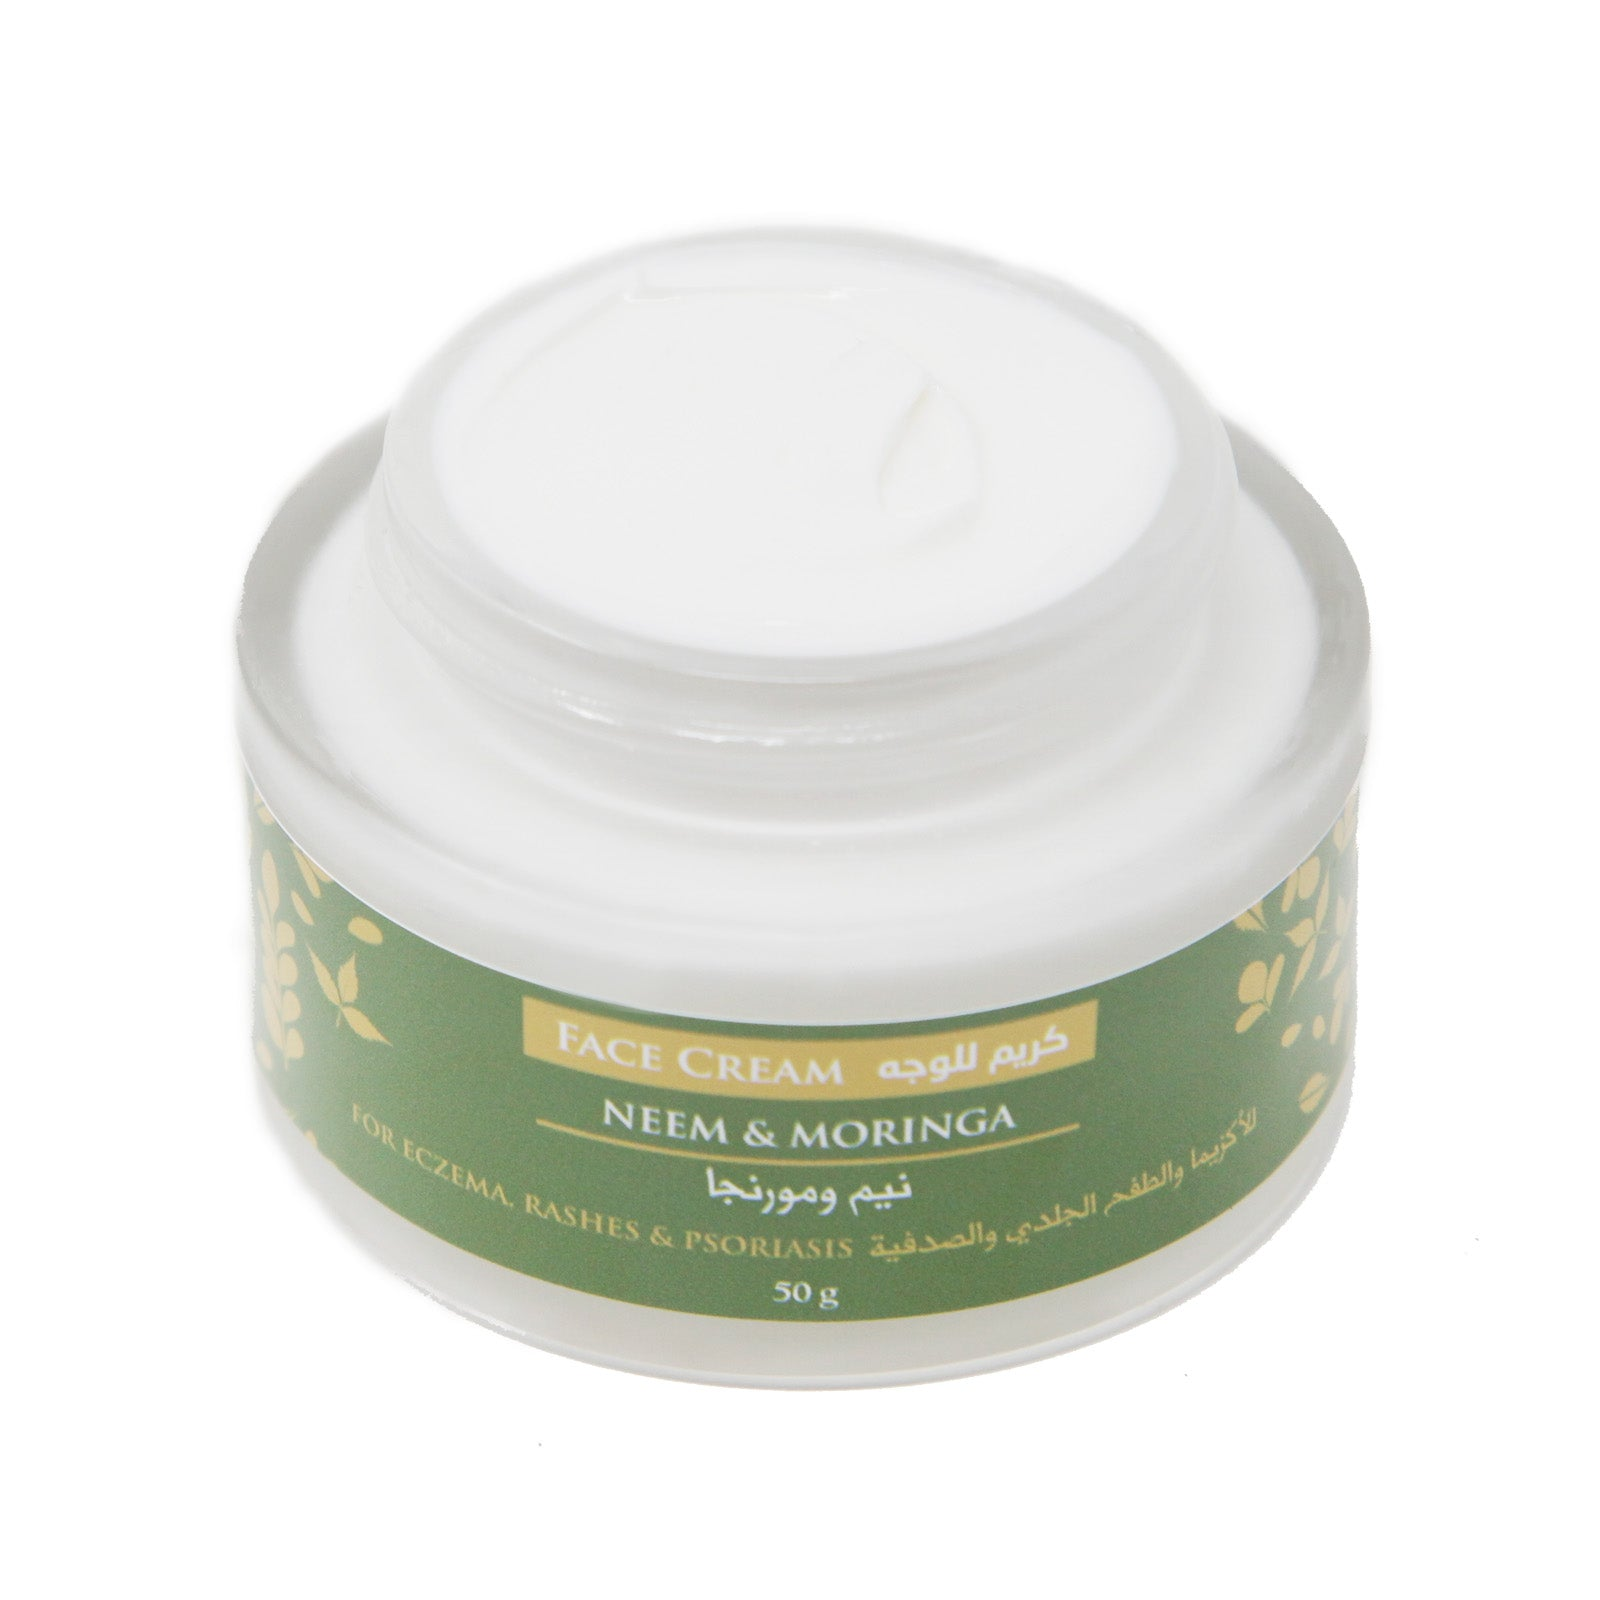 Neem and Moringa Face Cream - 50g